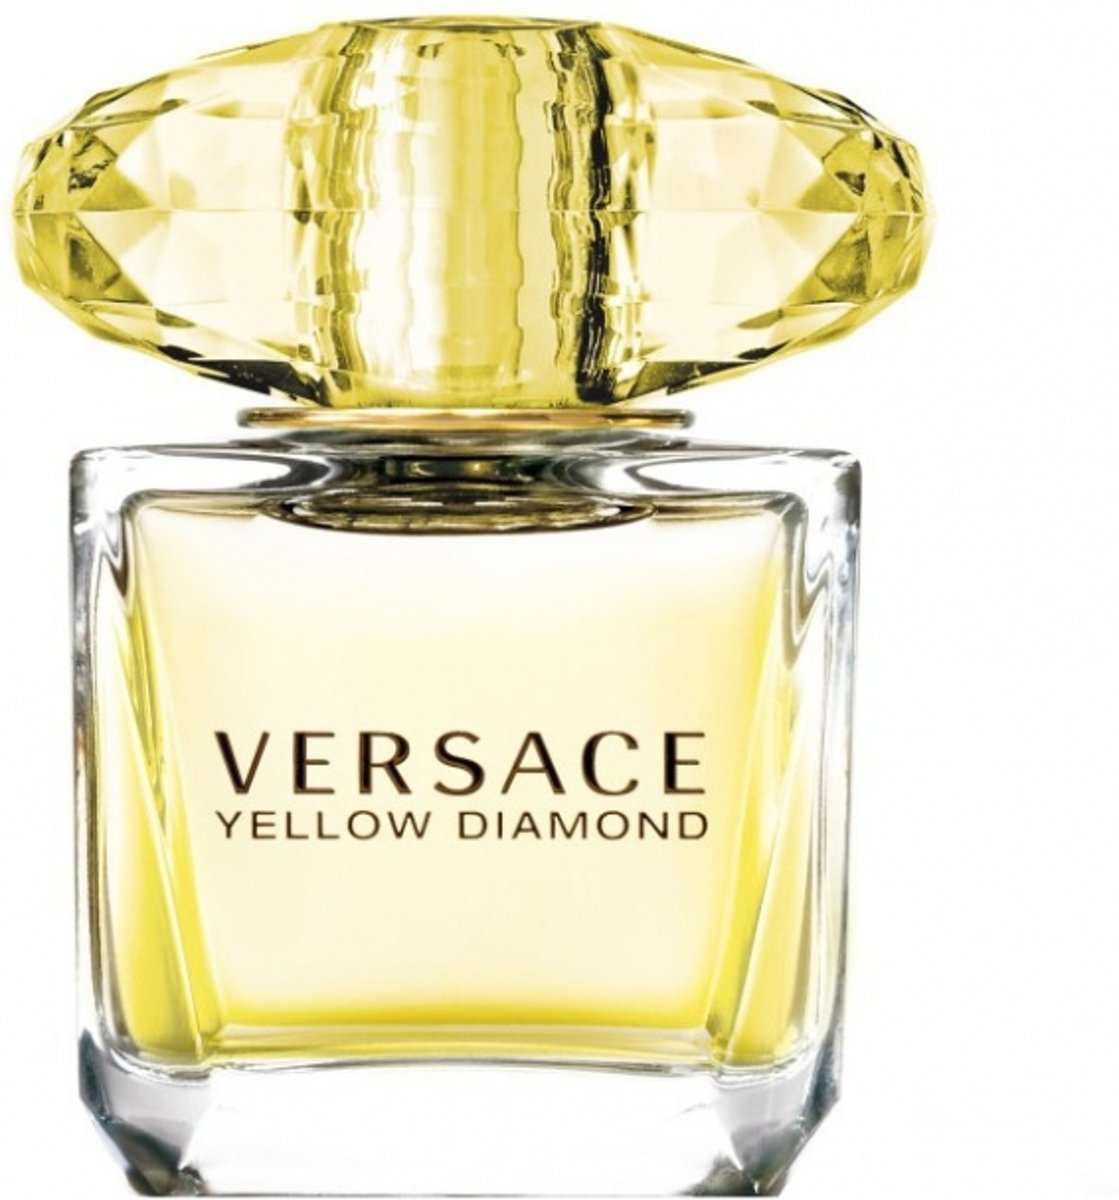 Versace Yellow Diamond- eau de toilette- 90ml